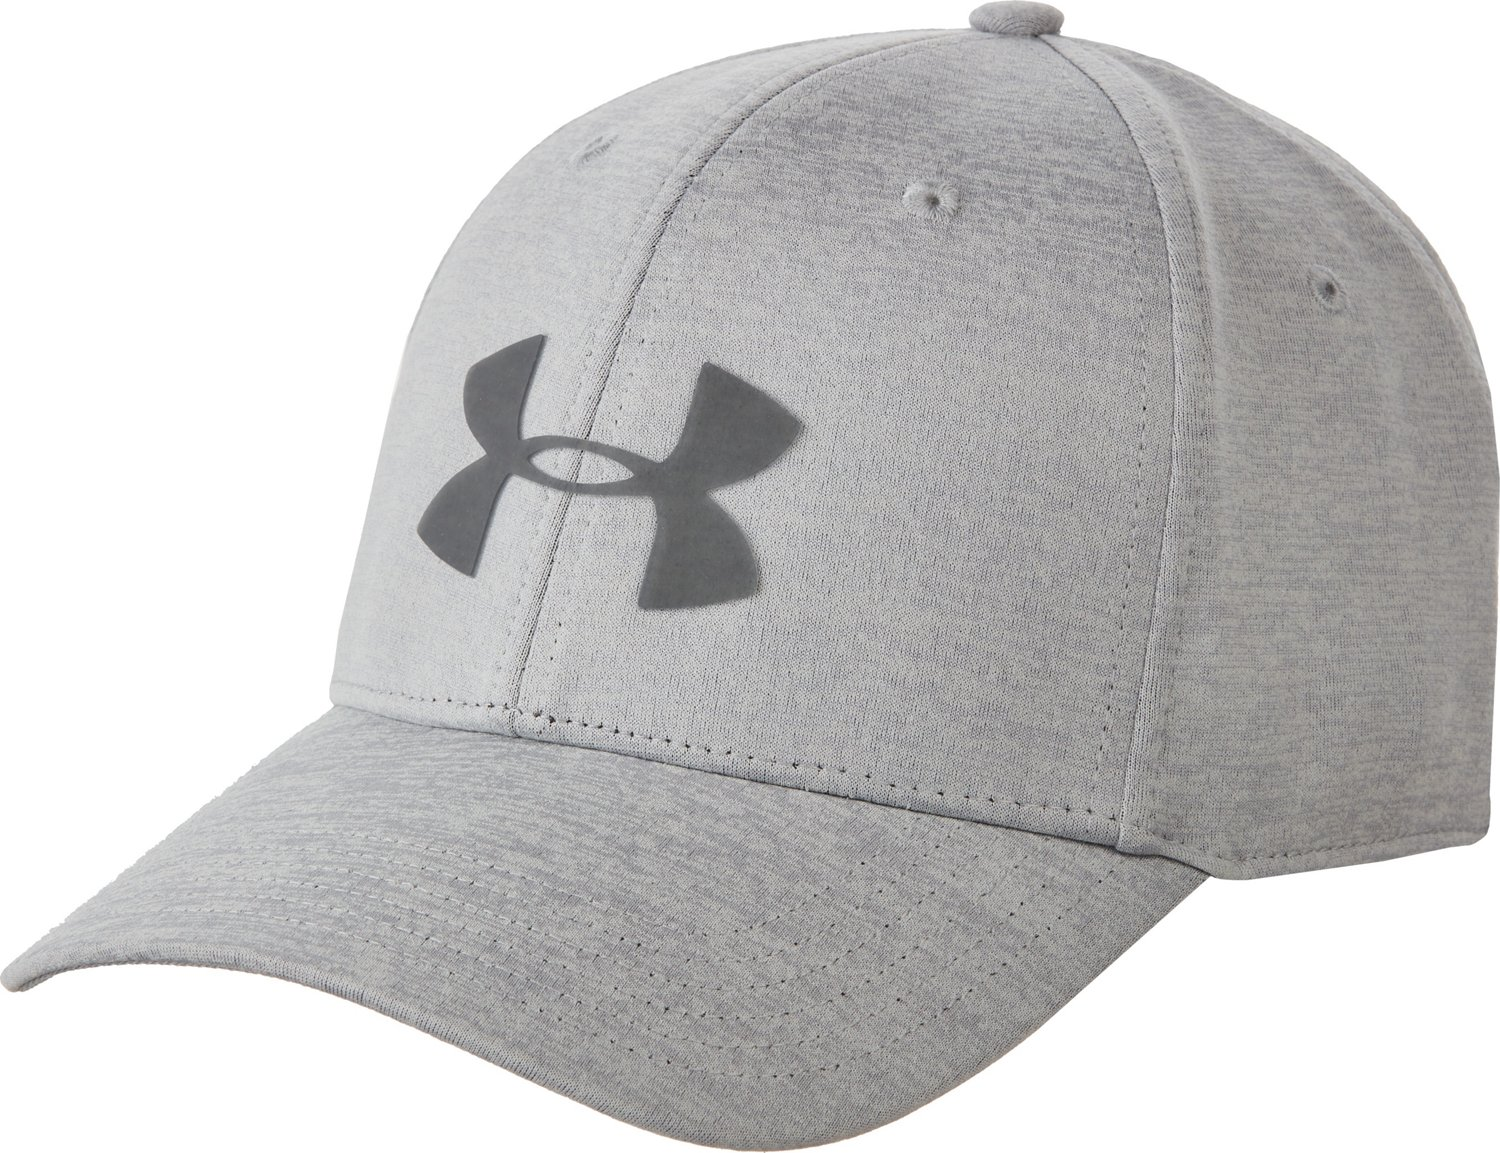 3741f73875d Display product reviews for Under Armour Men s Twist Closer 2 Training Cap